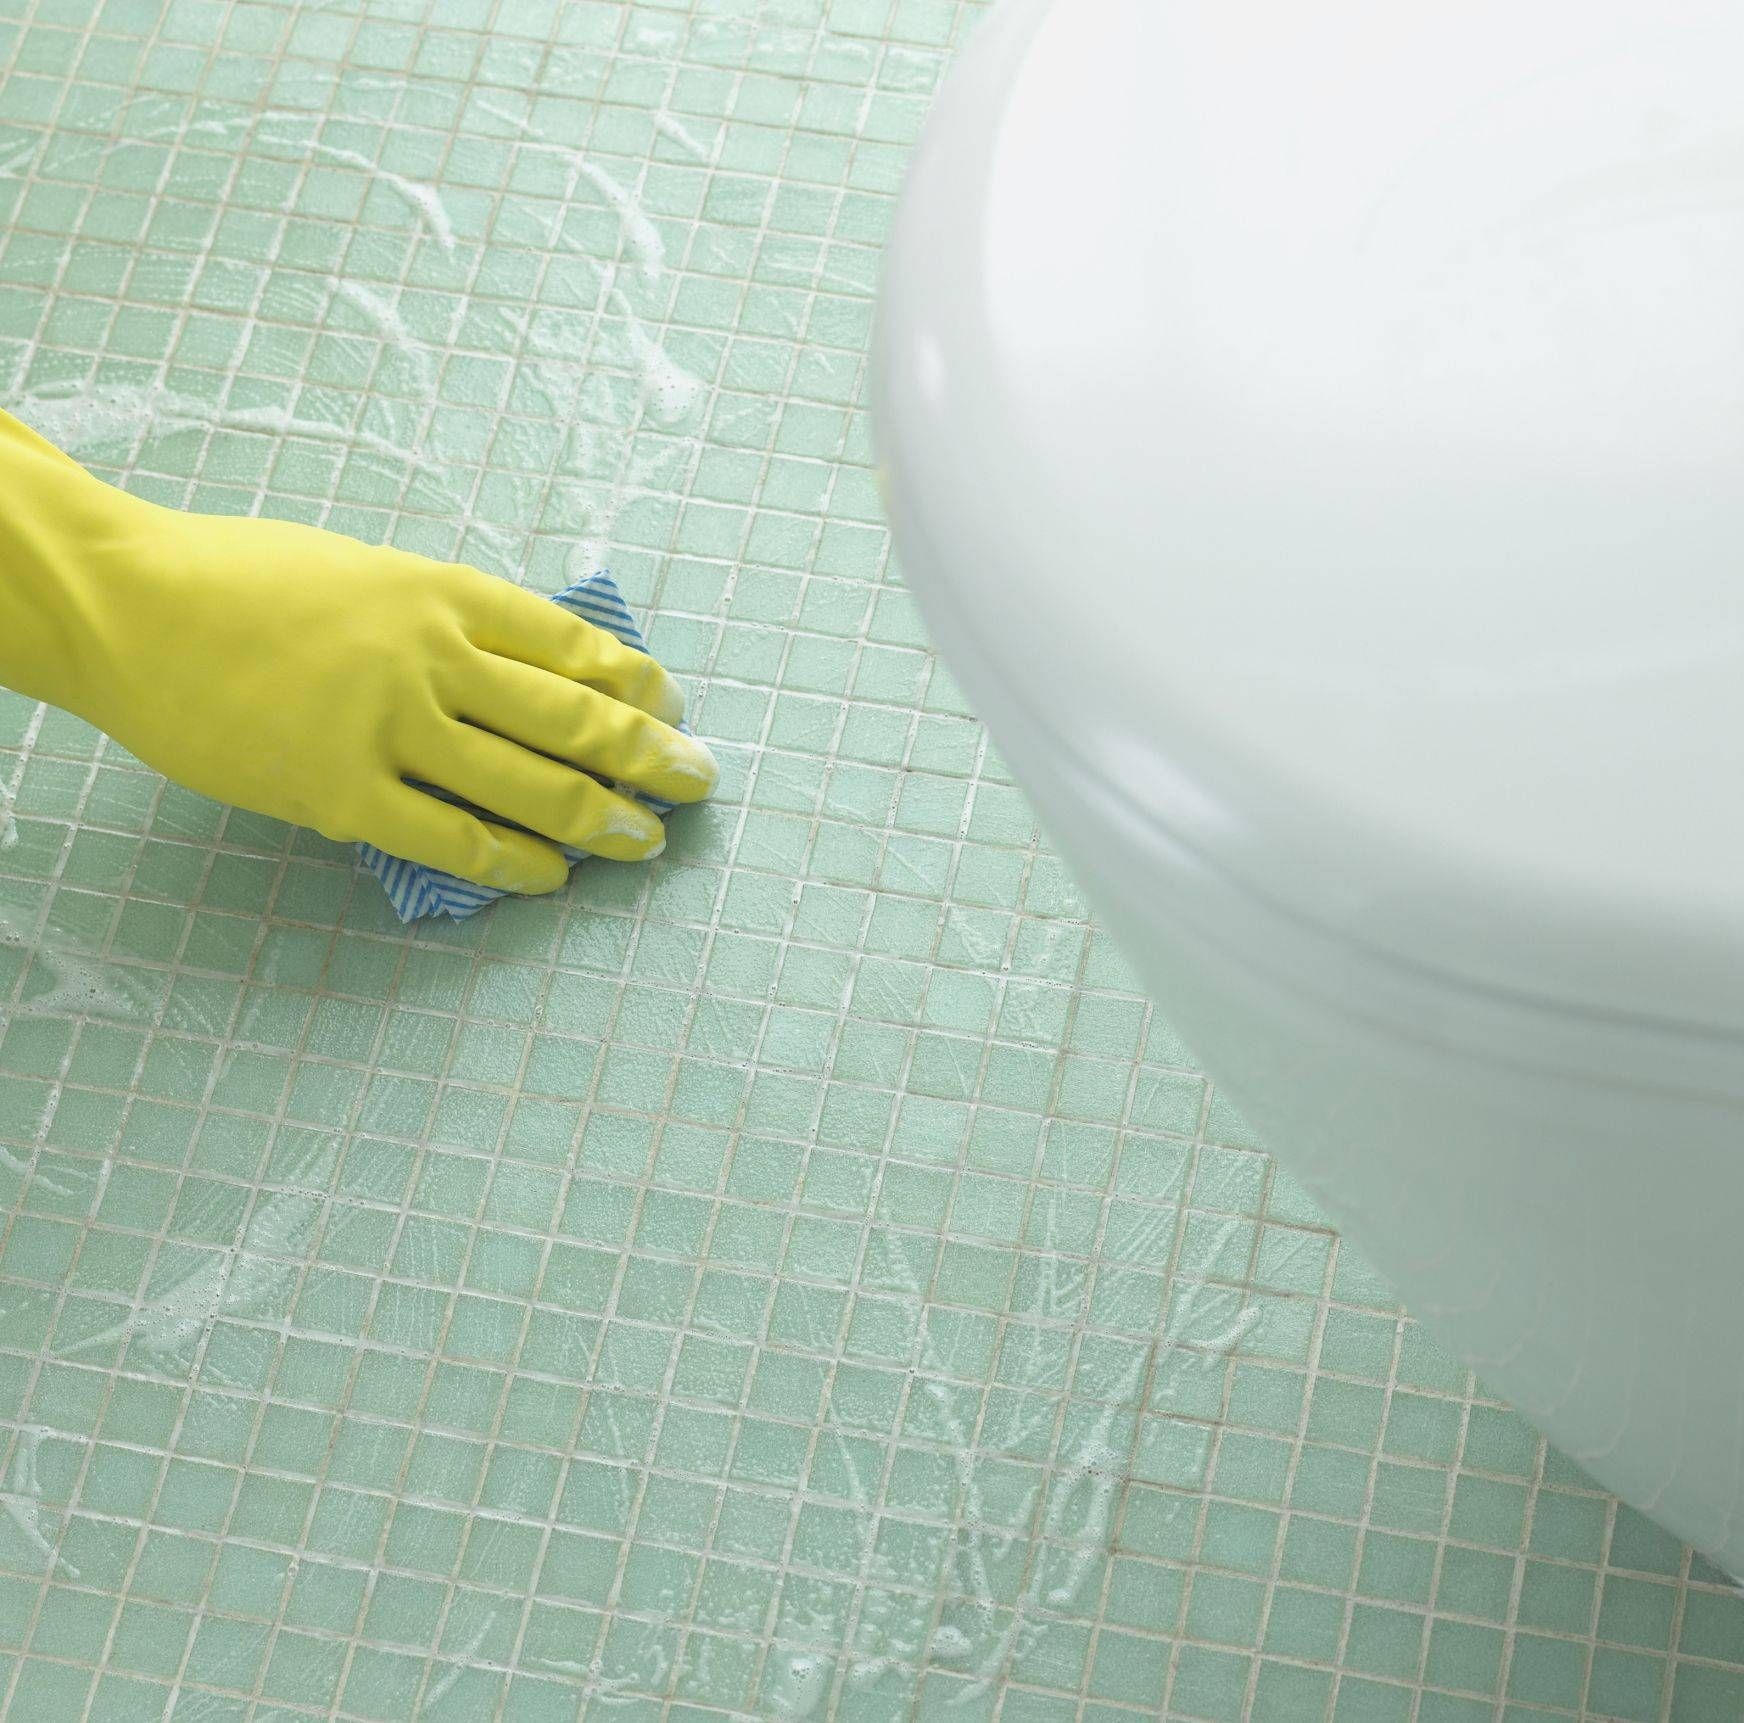 Cleaning Grout Off New Tiles Grout Cleaner Leaky Toilet Spring